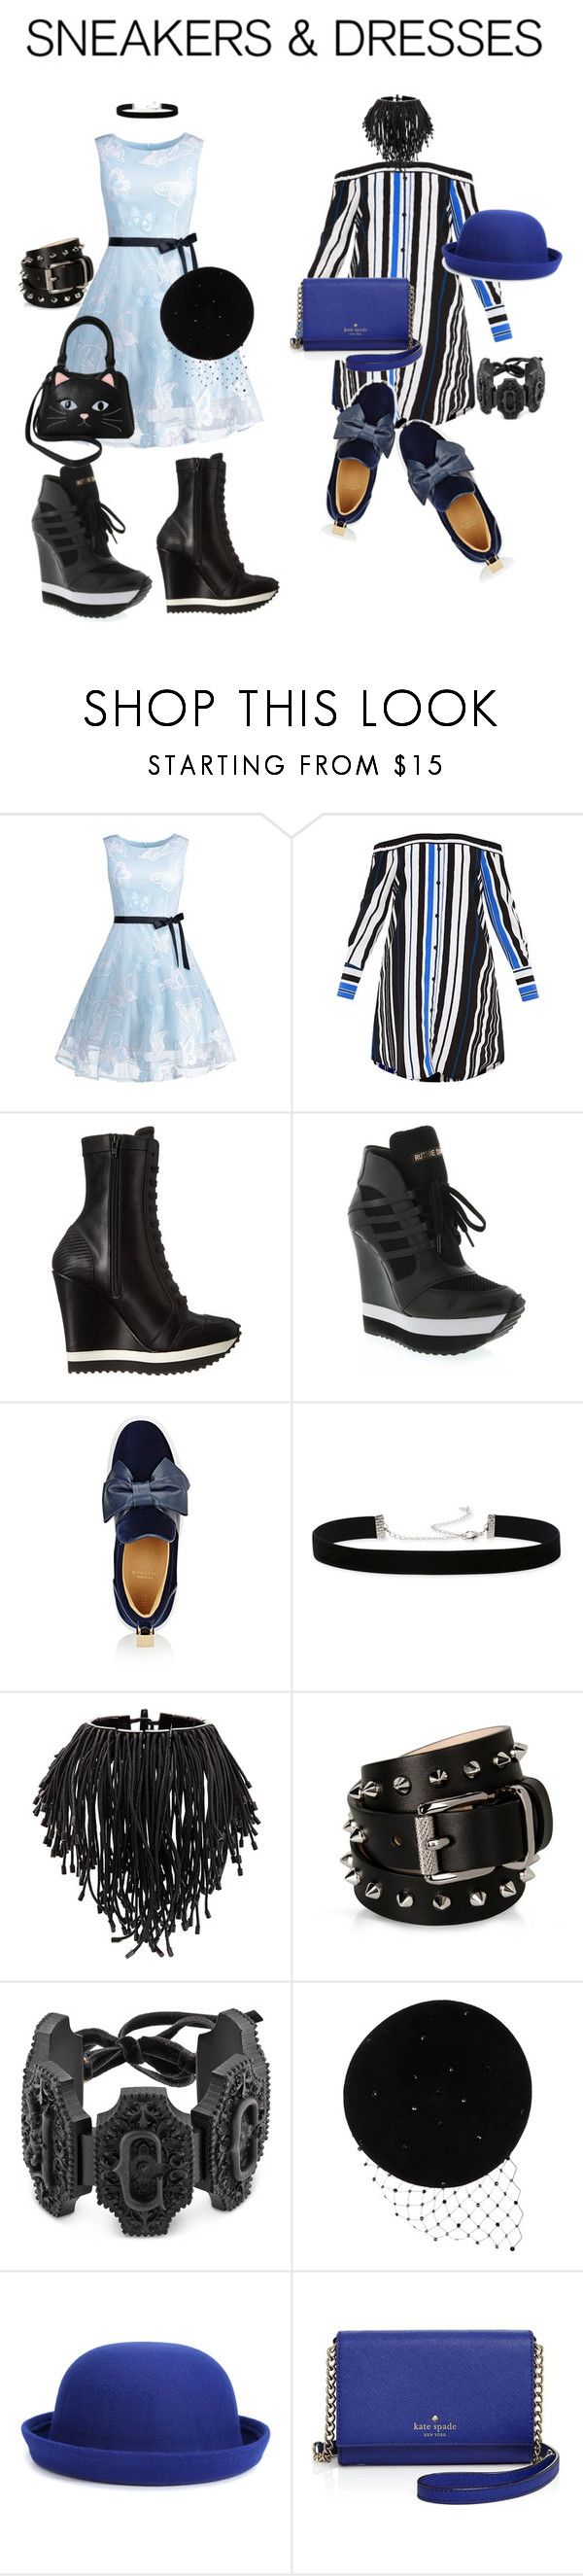 """#sneakersanddresses"" by glamourgrammy ❤ liked on Polyvore featuring Ruthie Davis, BUSCEMI, 2028, Monies, Barbara Bui, Gucci, Victoria Grant, WithChic, Kate Spade and Sleepyville Critters"